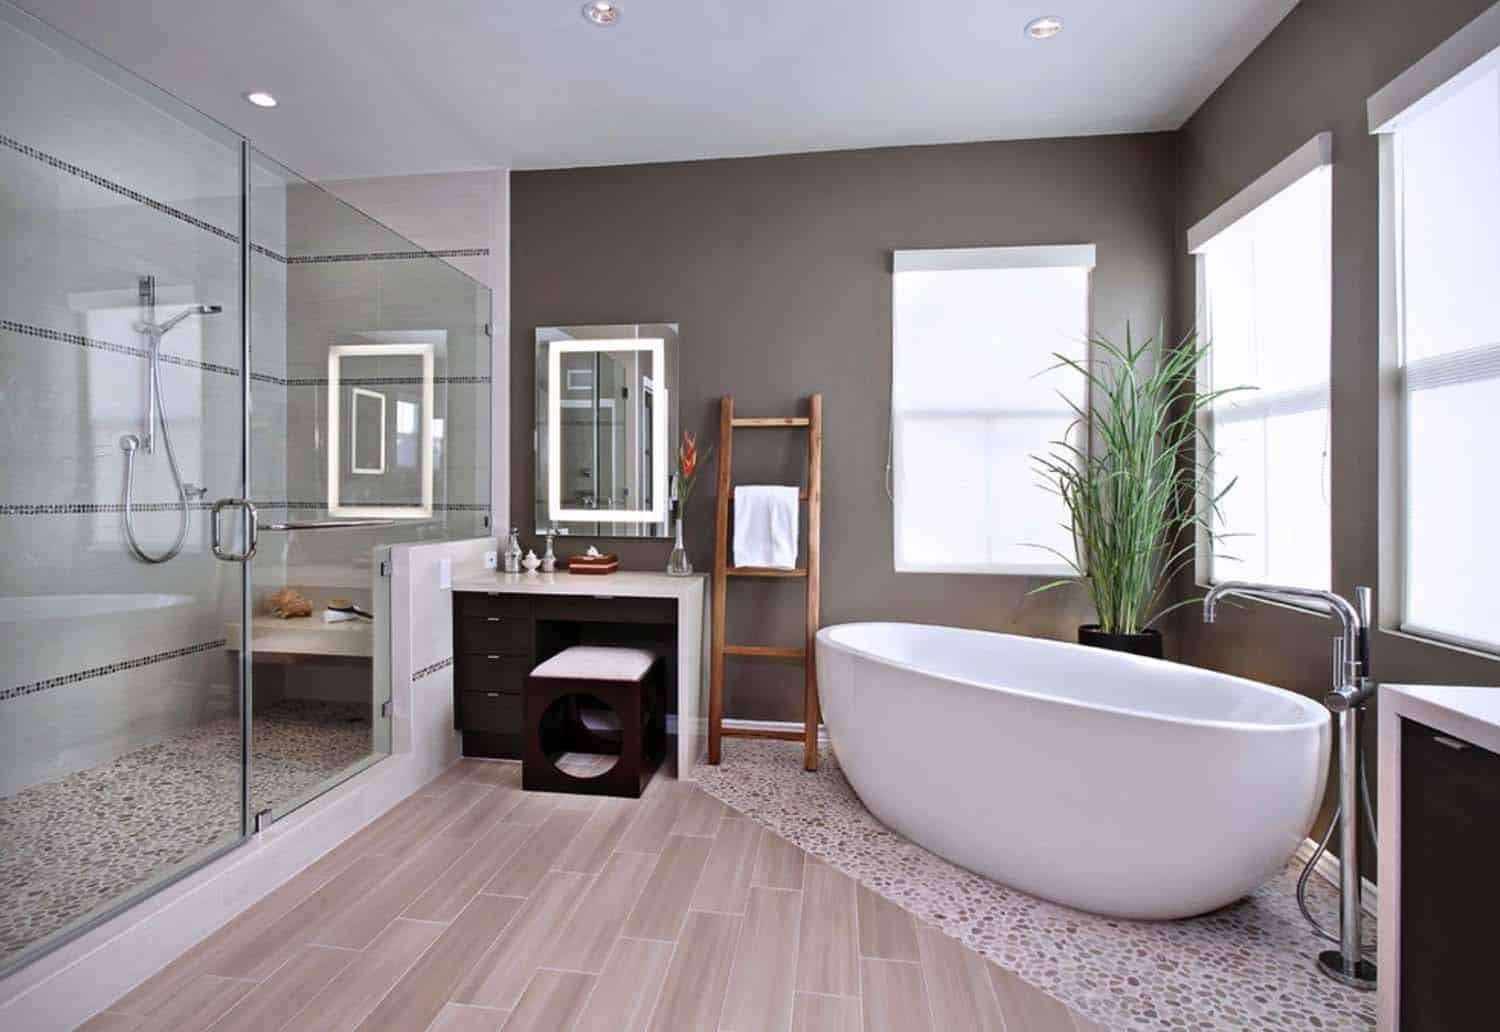 Freestanding Tubs Bathroom Ideas 06 1 Kindesign